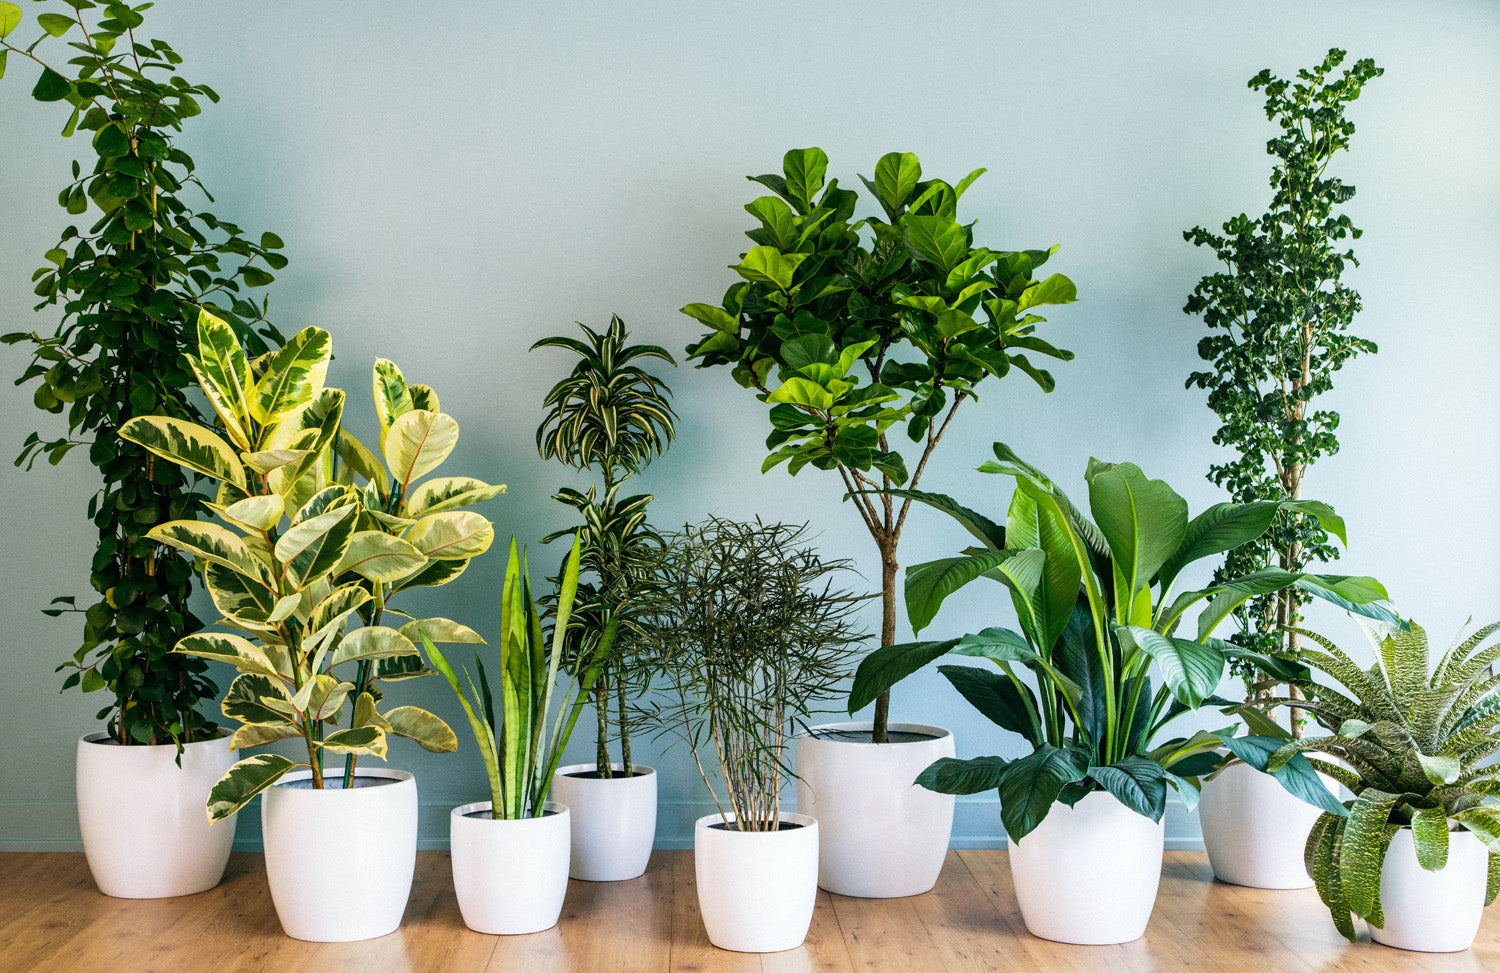 A Millennial's Best Friend: Plants